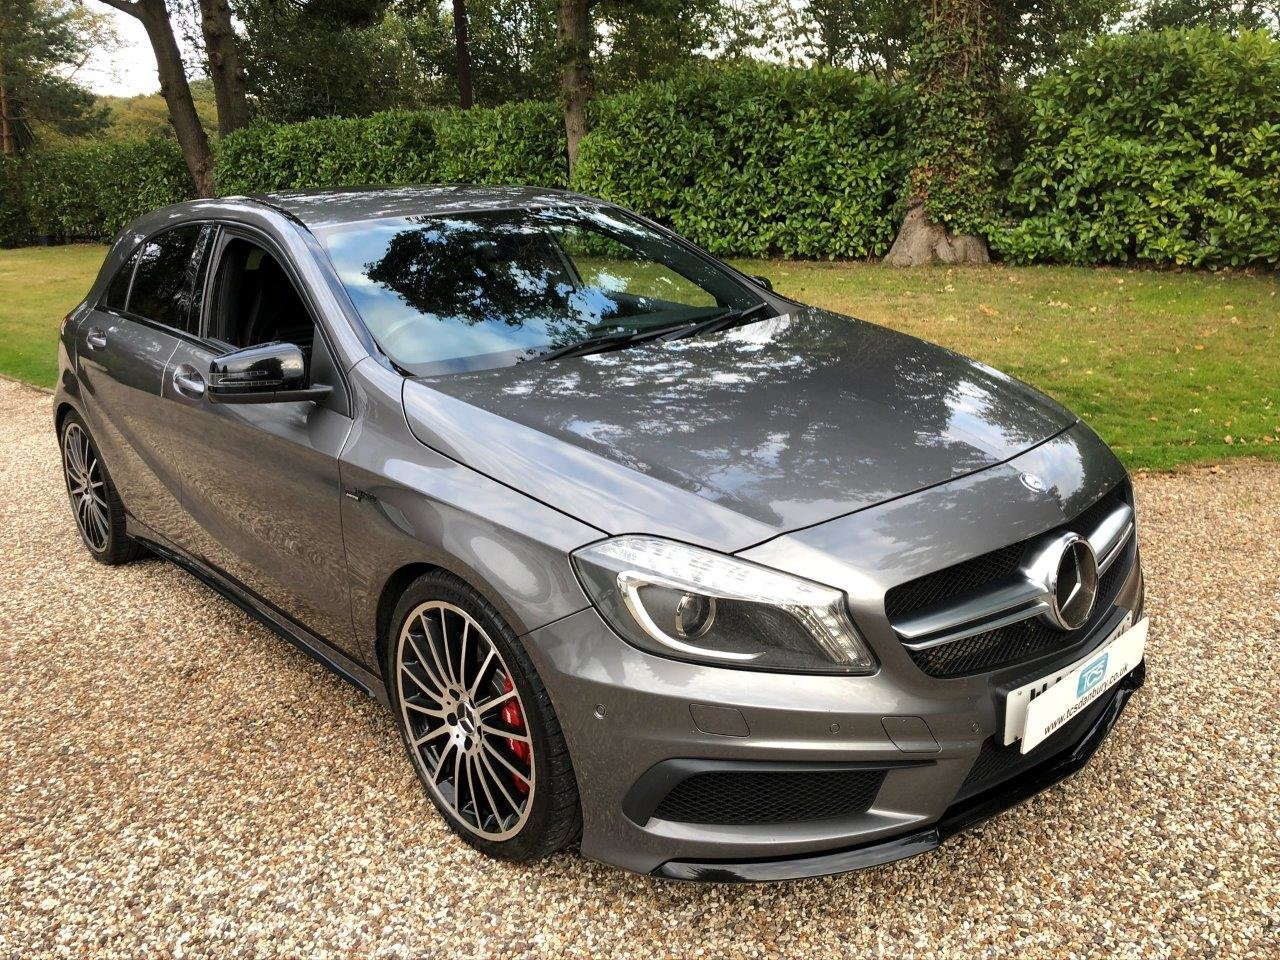 2015 Mercedes A45 AMG 4-Matic 7DCT 5-door hatchback For Sale (picture 1 of 6)